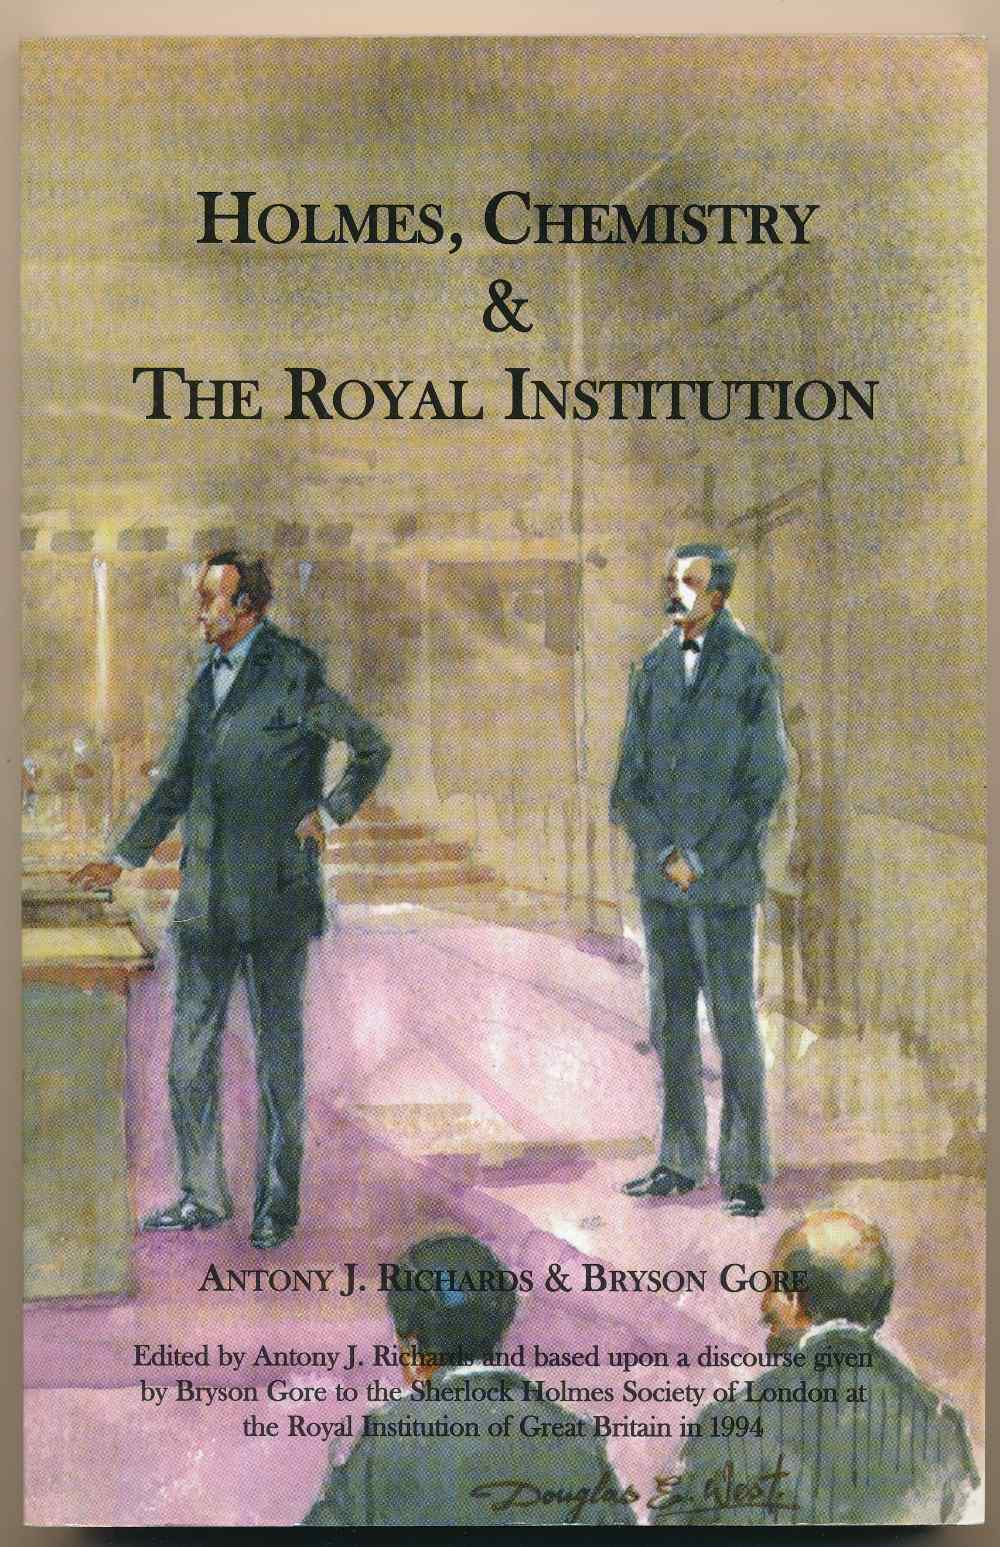 Holmes, chemistry and the Royal Institution